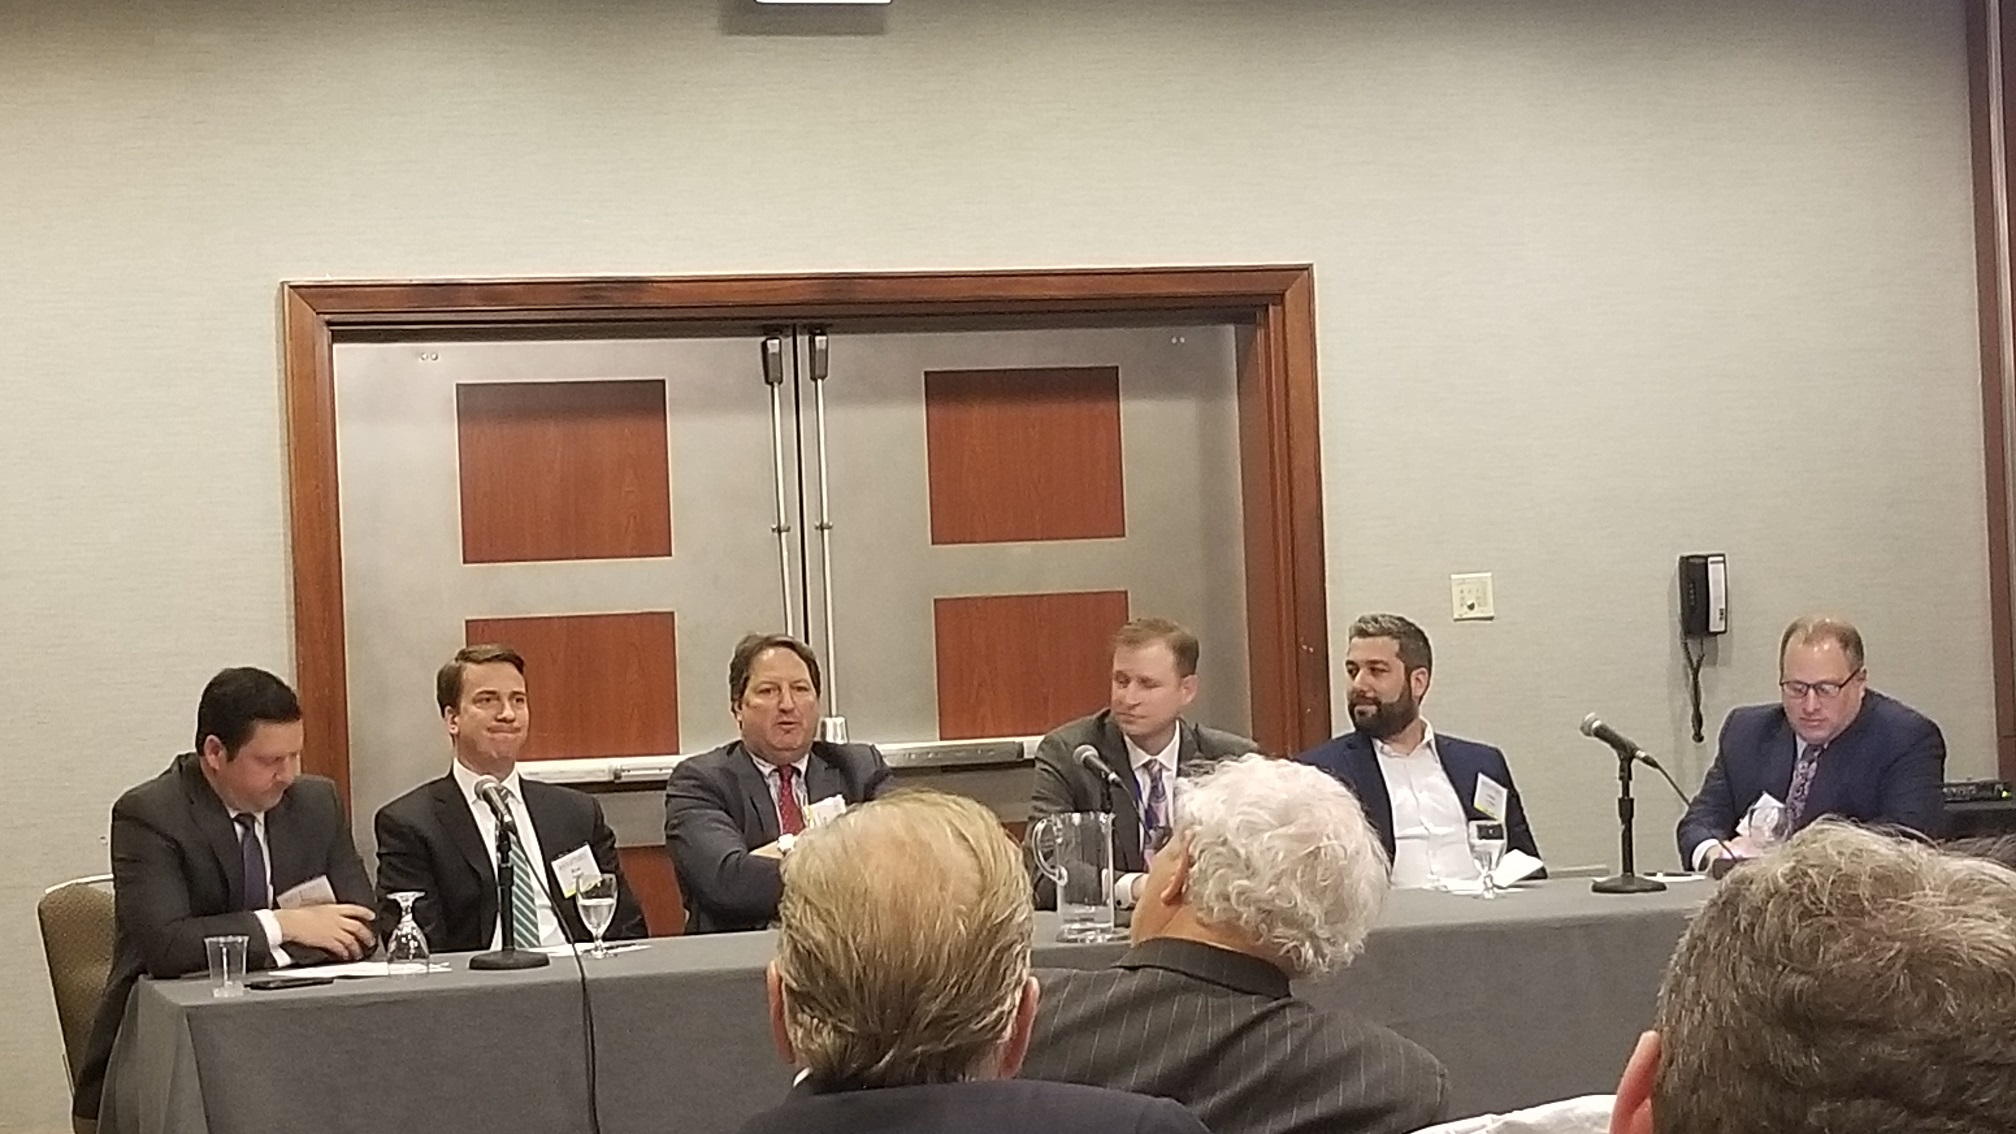 Art Rendak spoke on the finance breakout panel during the 2019 17th Annual Commercial Real Estate Forecast Conference.